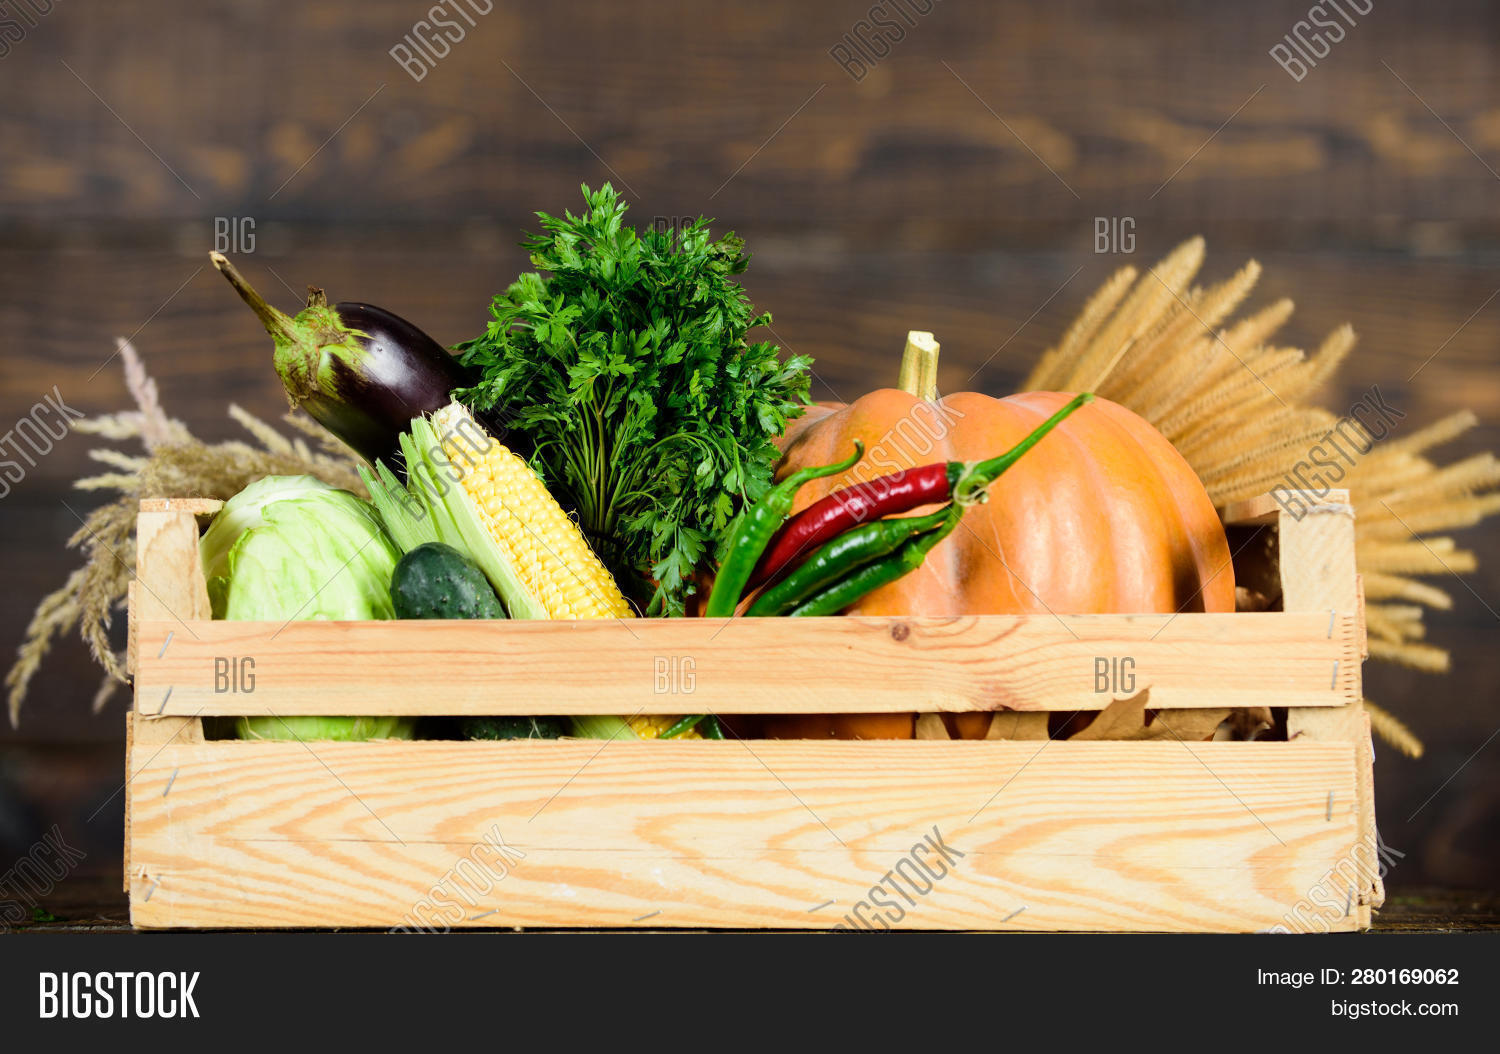 Excellent Quality Image & Photo (Free Trial) | Bigstock